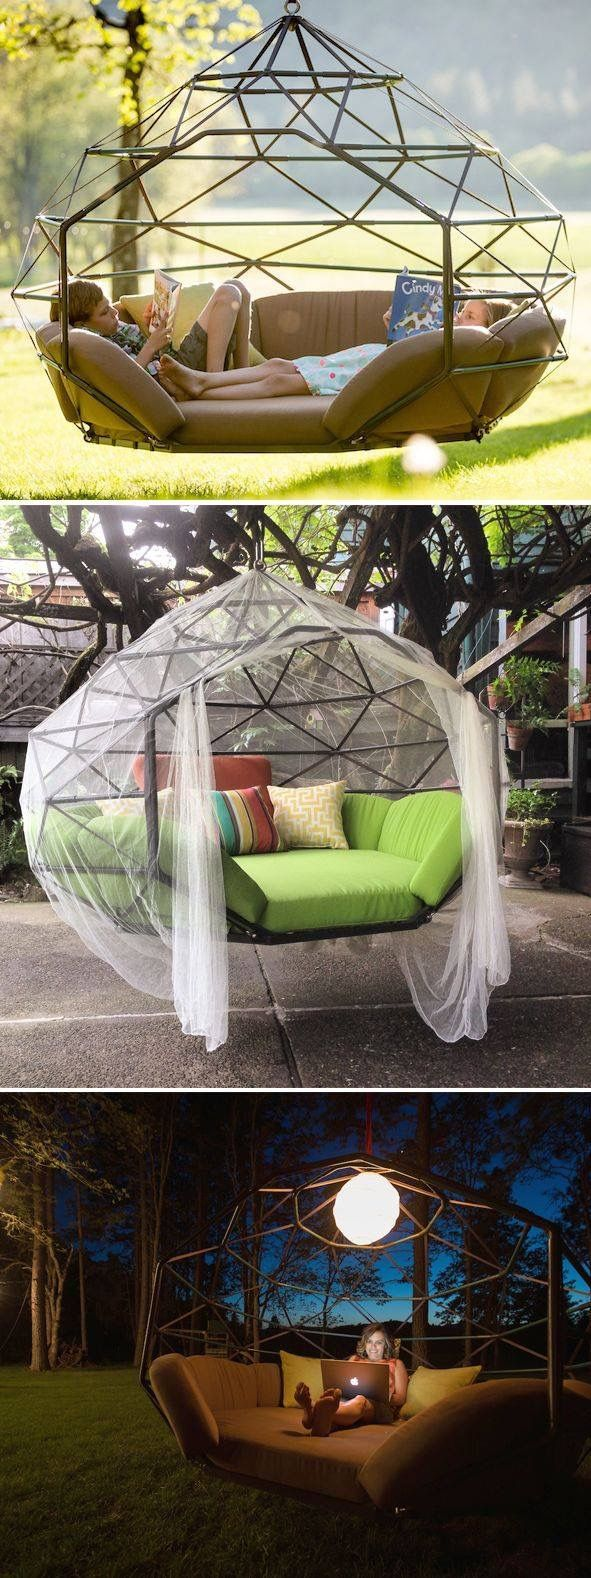 Add a zipper to the netting, put it under a good tarp would be a good bug & animal fee shelter